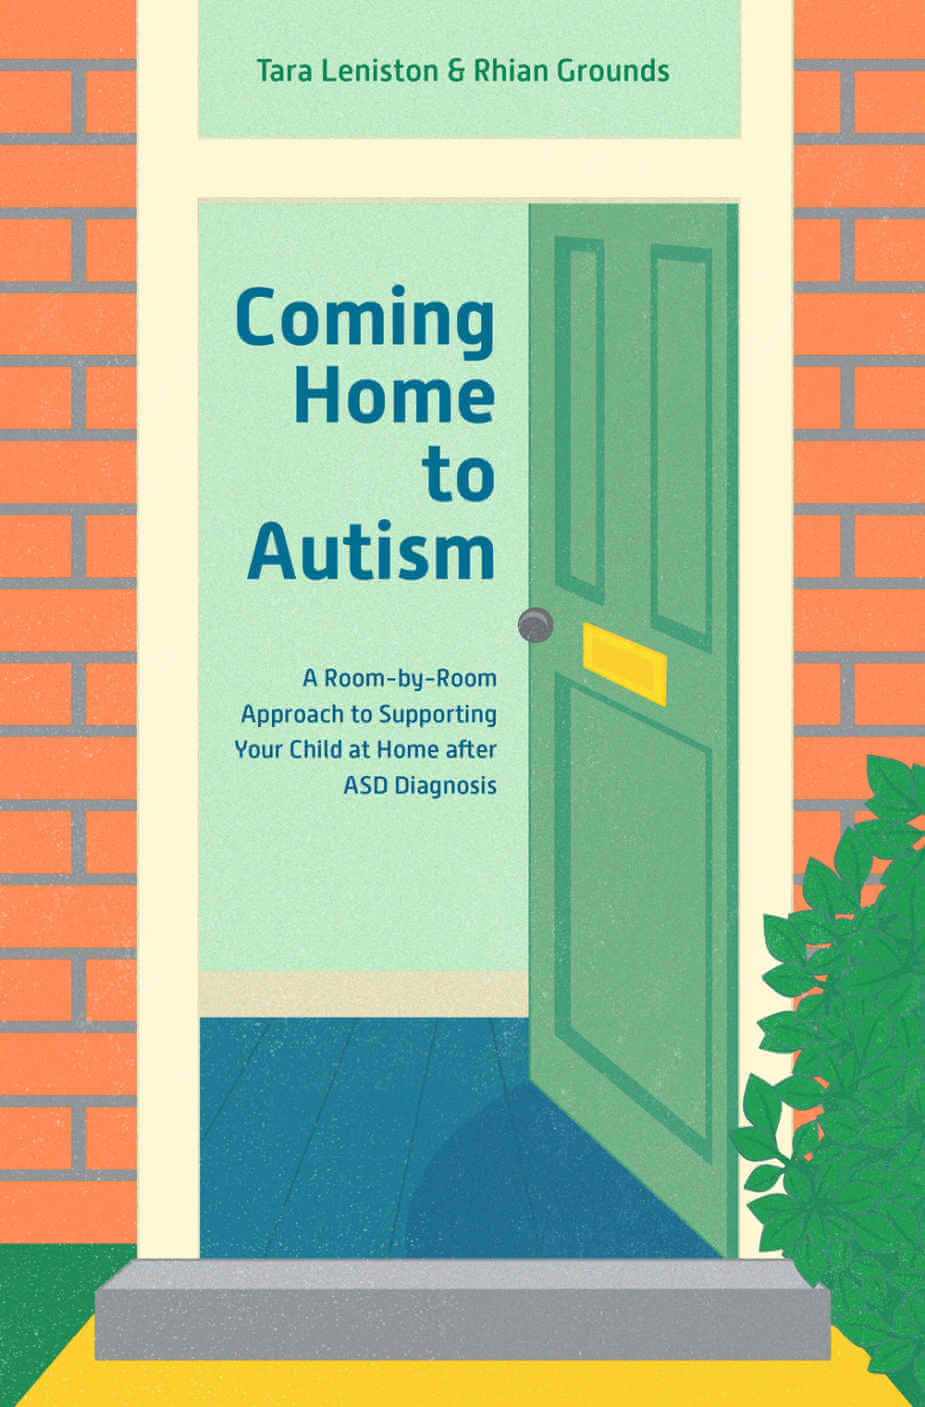 Coming Home to Autism - A Room-by-Room Approach to Supporting Your Child at Home after ASD Diagnosis